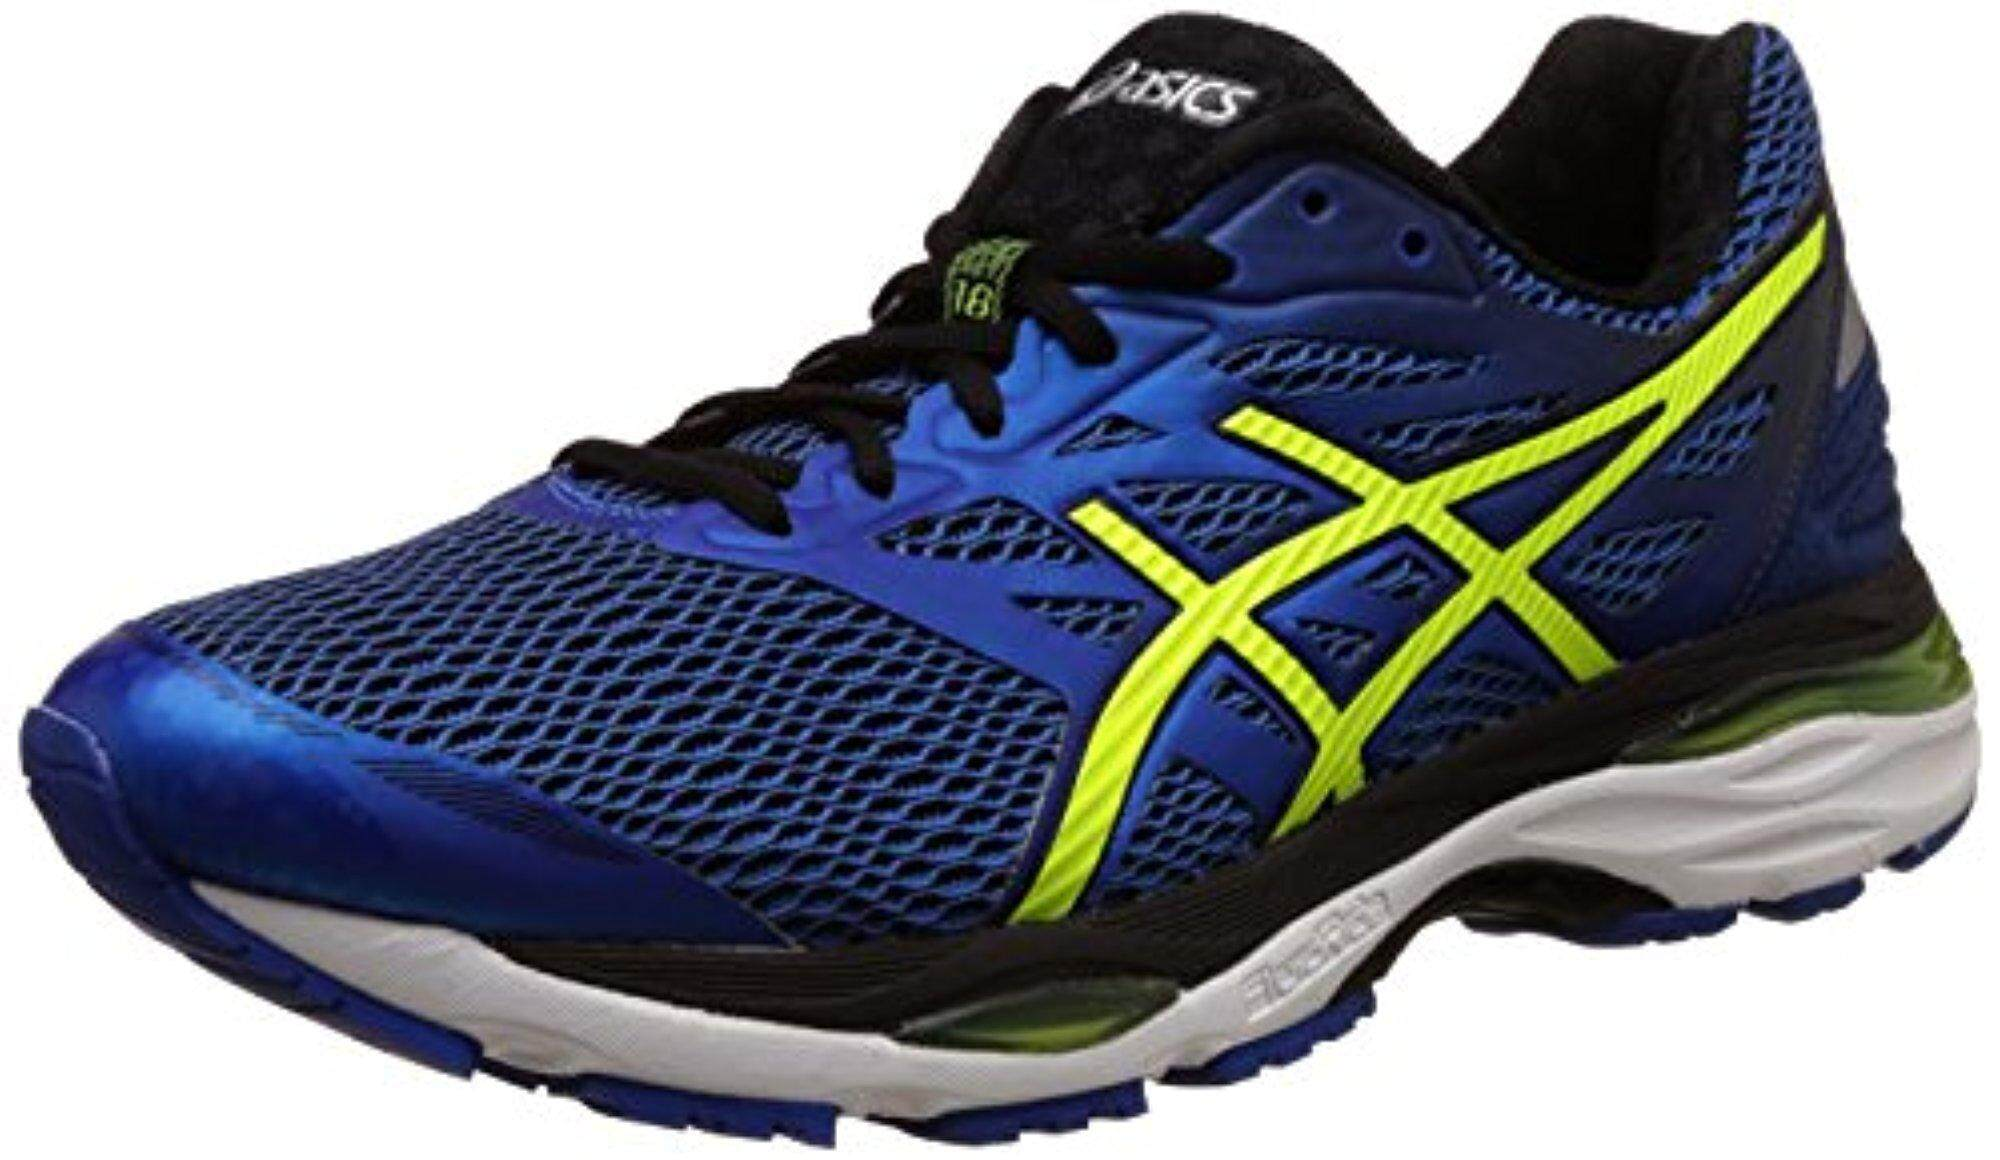 cb82f4d2d5e Asics Men s Shoes price in Malaysia - Best Asics Men s Shoes